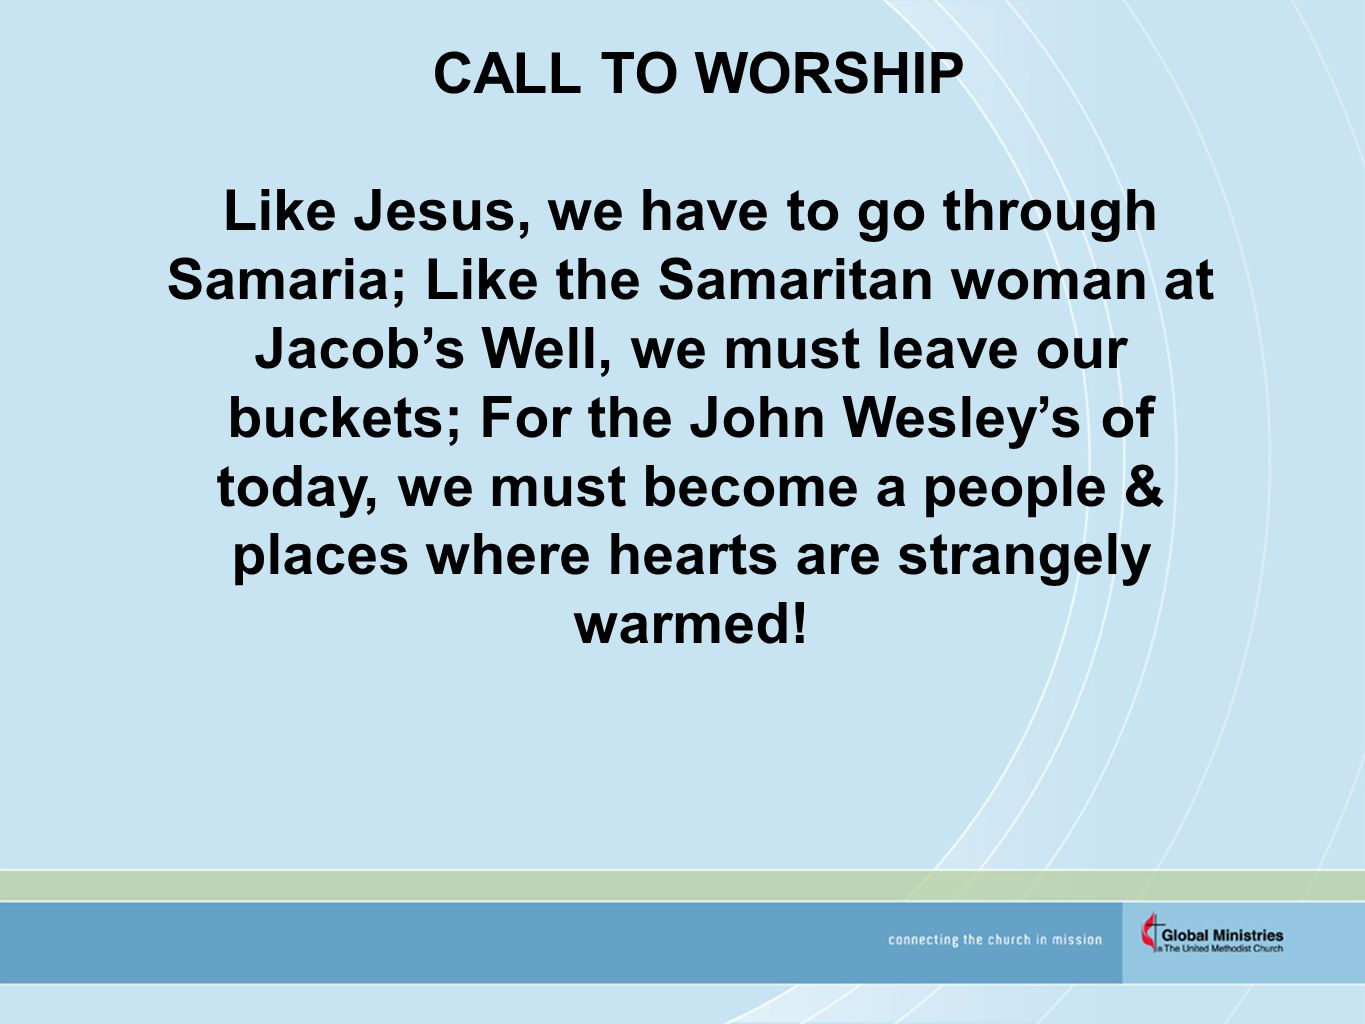 CALL TO WORSHIP Like Jesus, we have to go through Samaria; Like the Samaritan woman at Jacob's Well, we must leave our buckets; For the John Wesley's of today, we must become a people & places where hearts are strangely warmed!